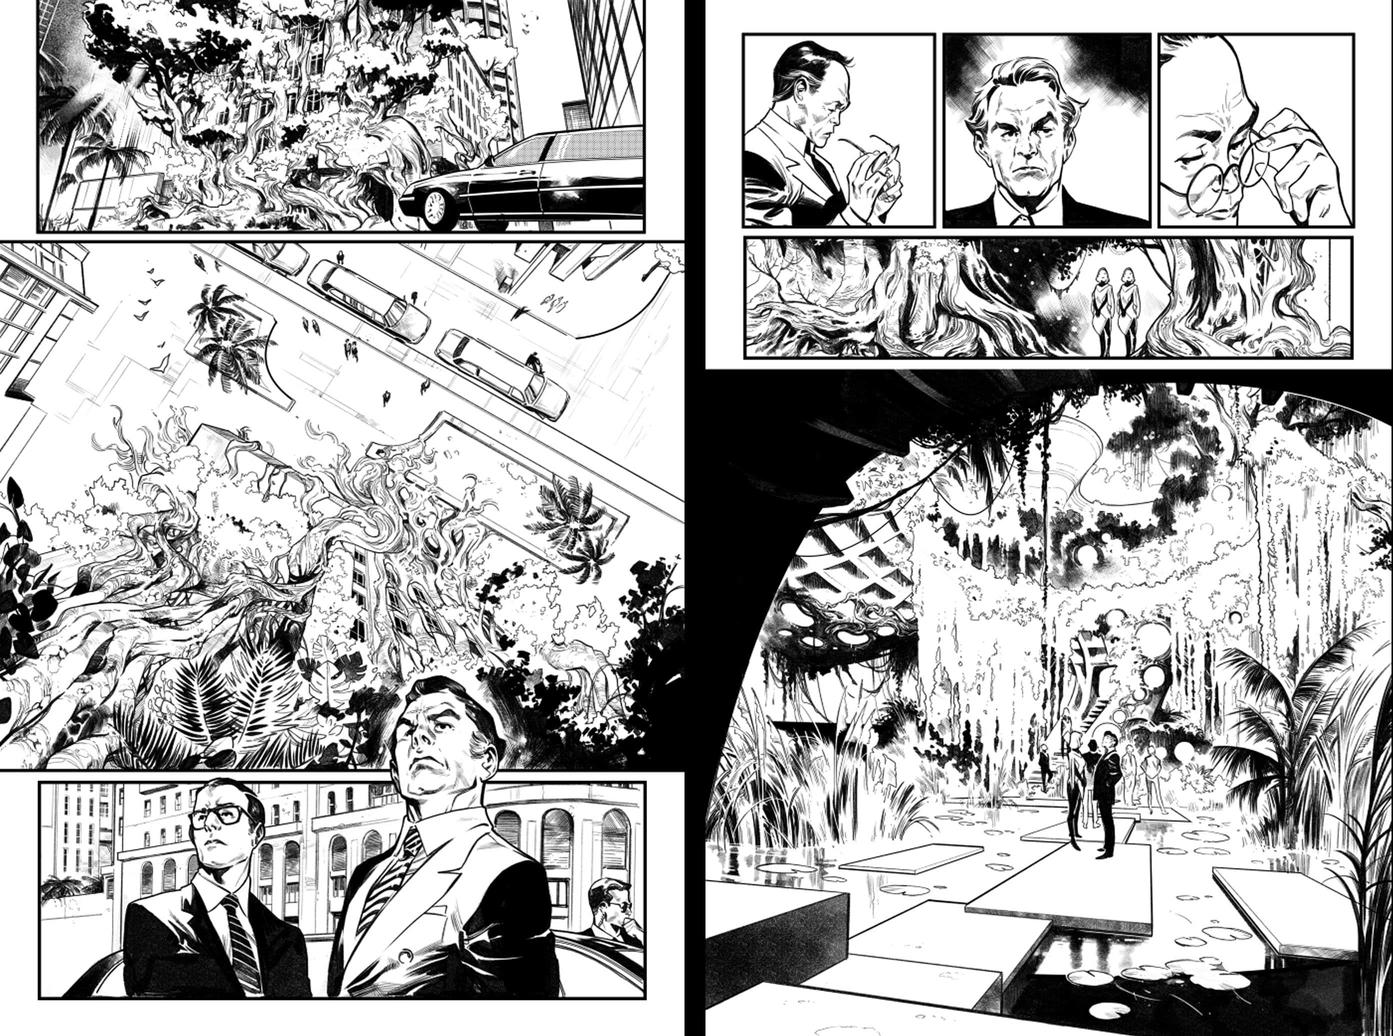 House of X 1 pages 5 and 7